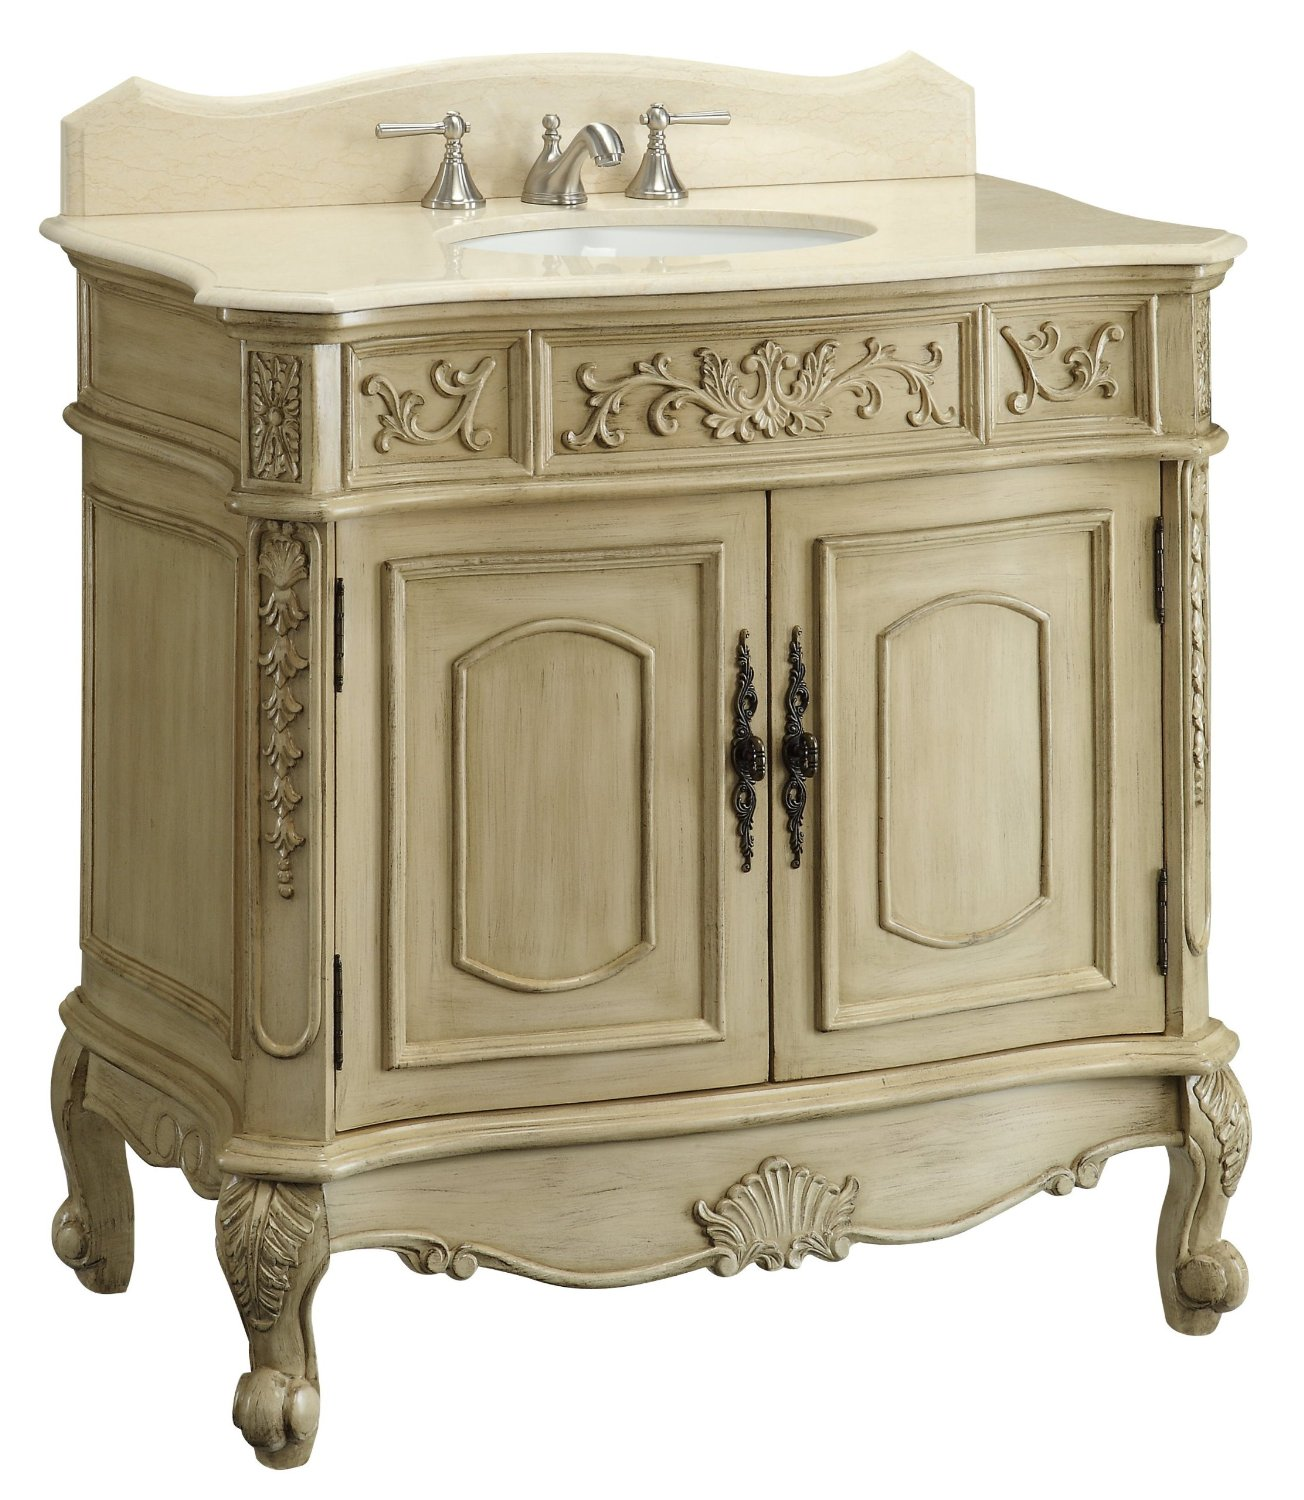 Antique White Bathroom Cabinets adelina 37 inch unique antique bathroom vanity, white marble